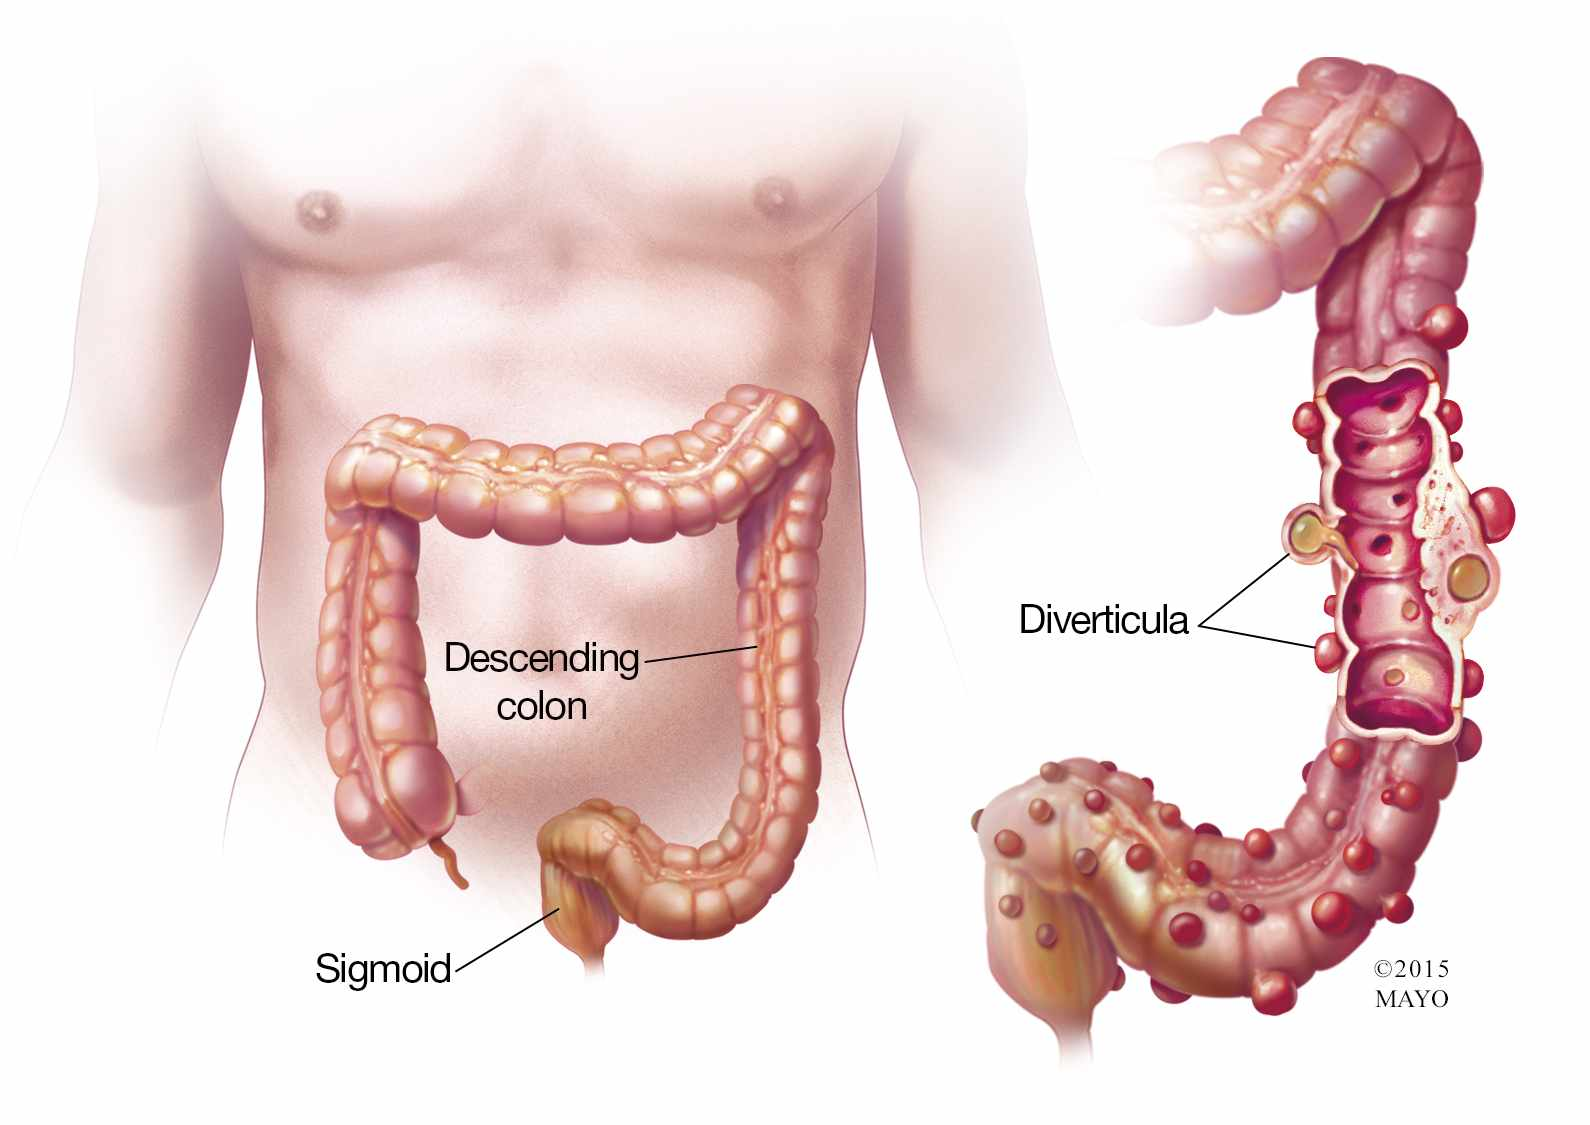 Diverticulitis: Symptoms and Causes